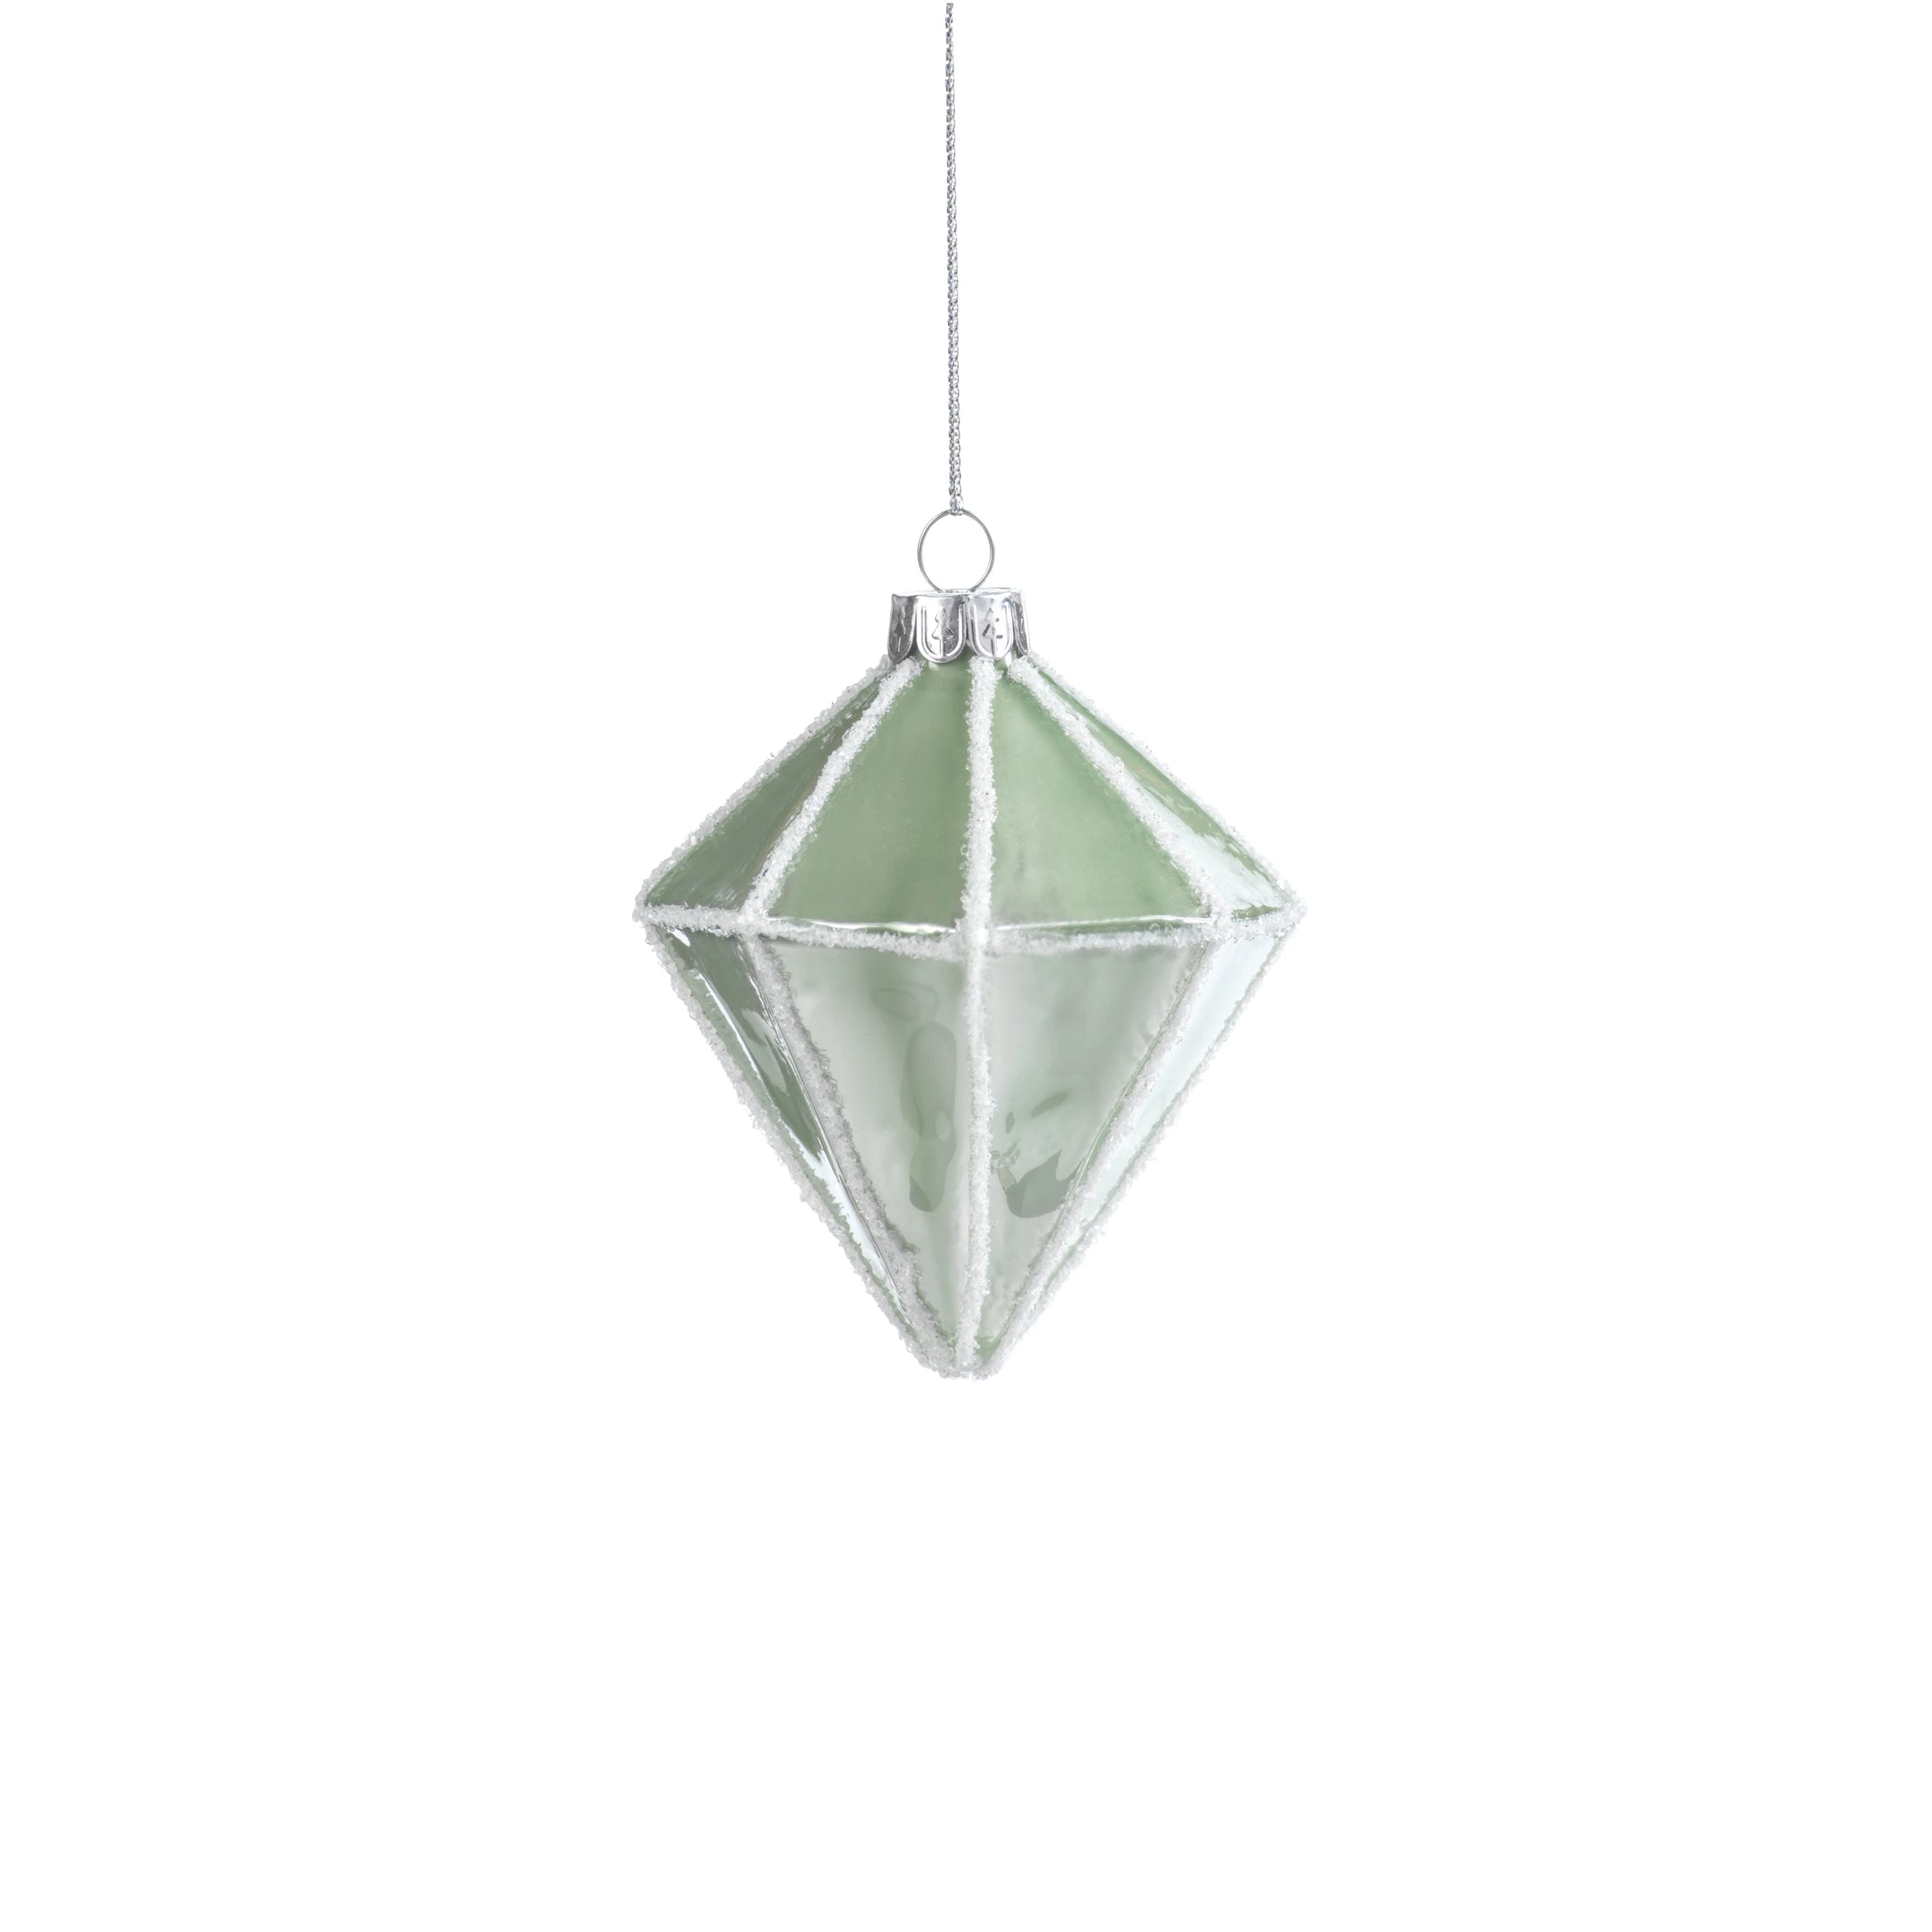 Metallic Green Faceted Ornament - CARLYLE AVENUE